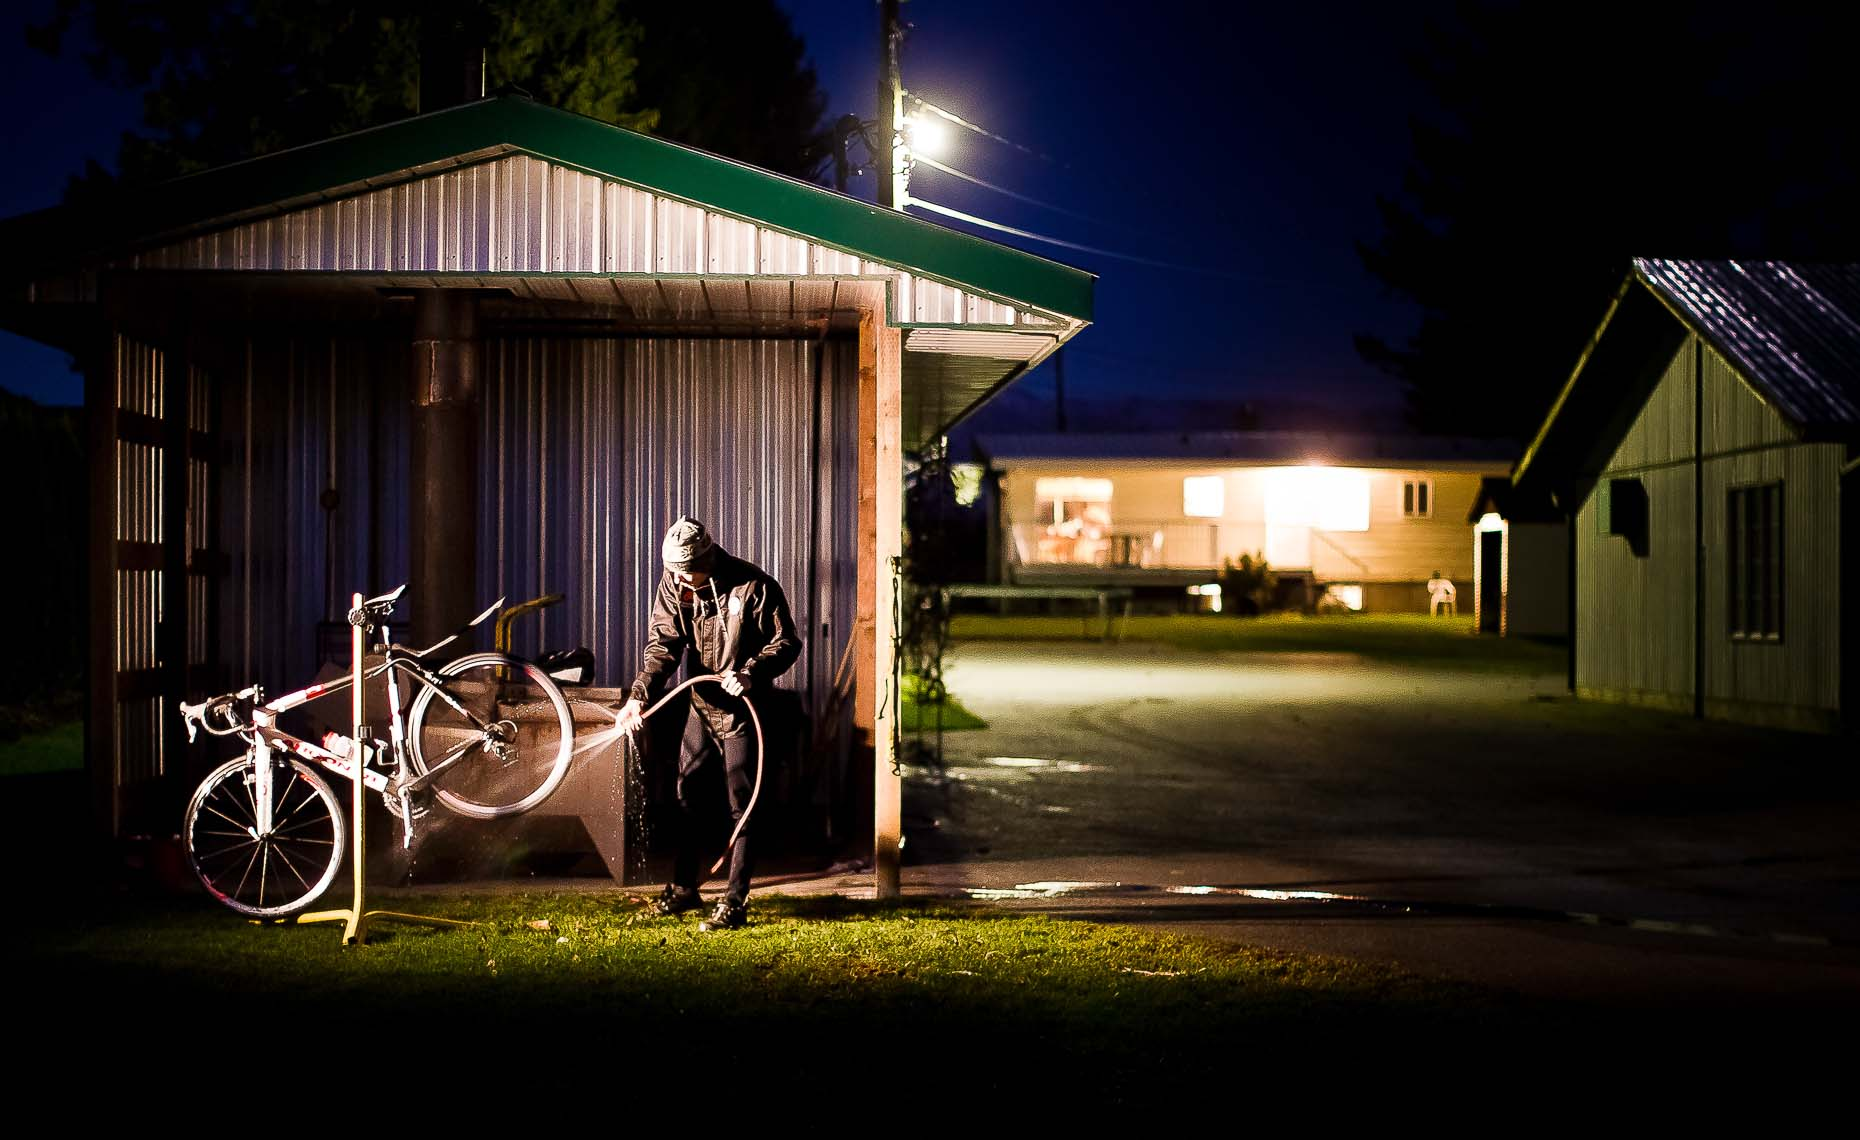 Will routley night photography shot of bike cleaning.